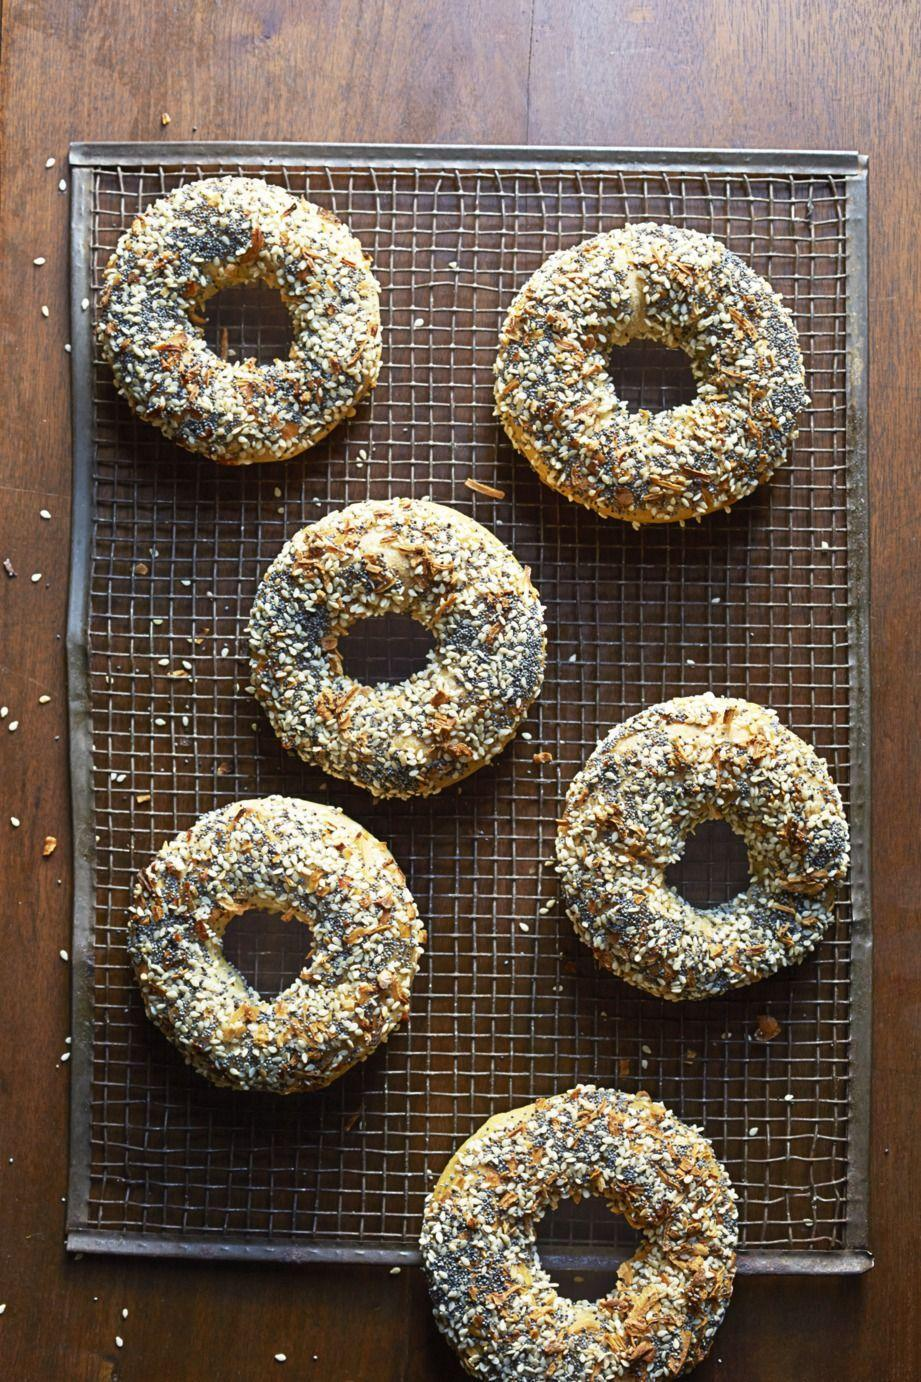 "<p>PSA: You can make your own fluffy, doughy, crisp bagels at home using pizza dough. (Like a trip to NYC without the airfare!)</p><p><em><a href=""https://www.goodhousekeeping.com/food-recipes/a15926/montreal-style-bagels-recipe-ghk1014/"" rel=""nofollow noopener"" target=""_blank"" data-ylk=""slk:Get the recipe for Montreal-Style Bagels »"" class=""link rapid-noclick-resp"">Get the recipe for Montreal-Style Bagels »</a></em></p>"